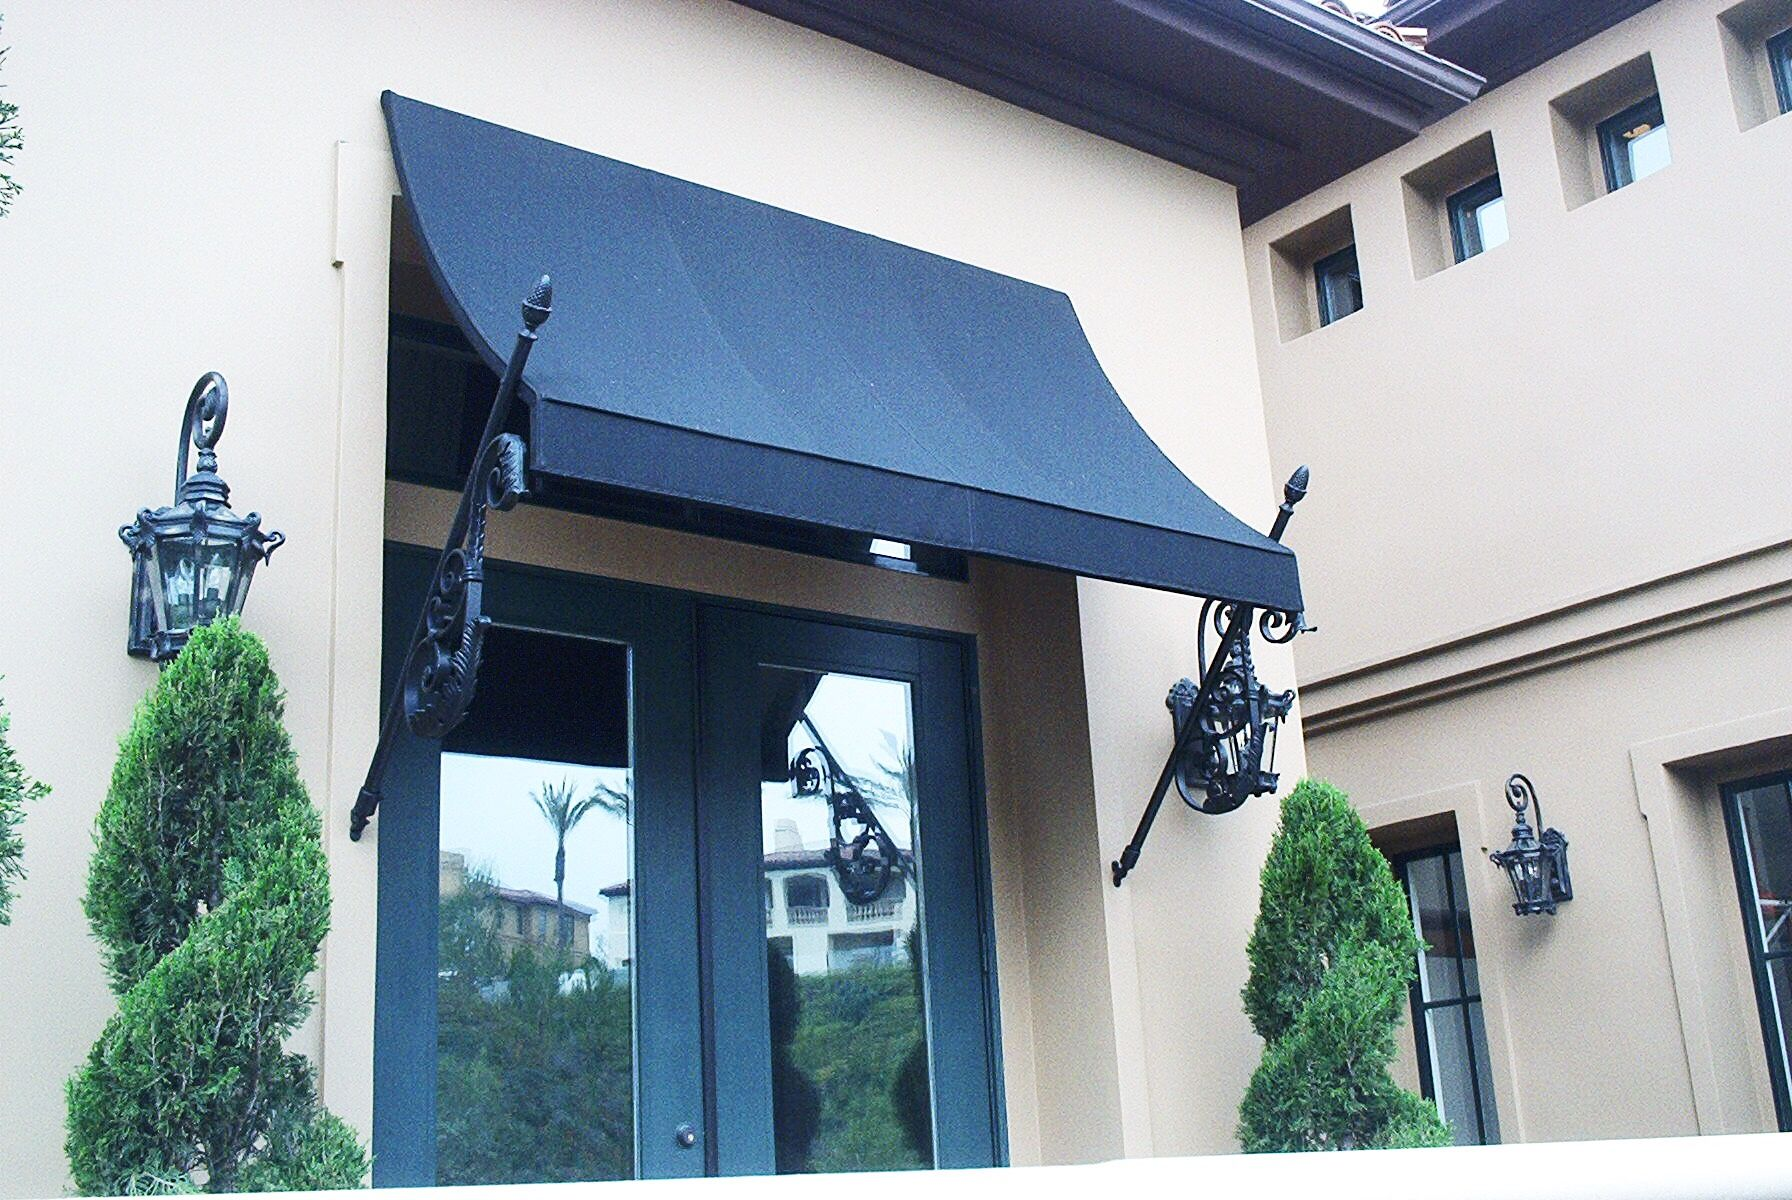 Awnings Like This Concave Fixed Awning Are A Great Way To Decoratively Extend The Shade Outside Of Your Doors And Window Window Awnings House Exterior Awning